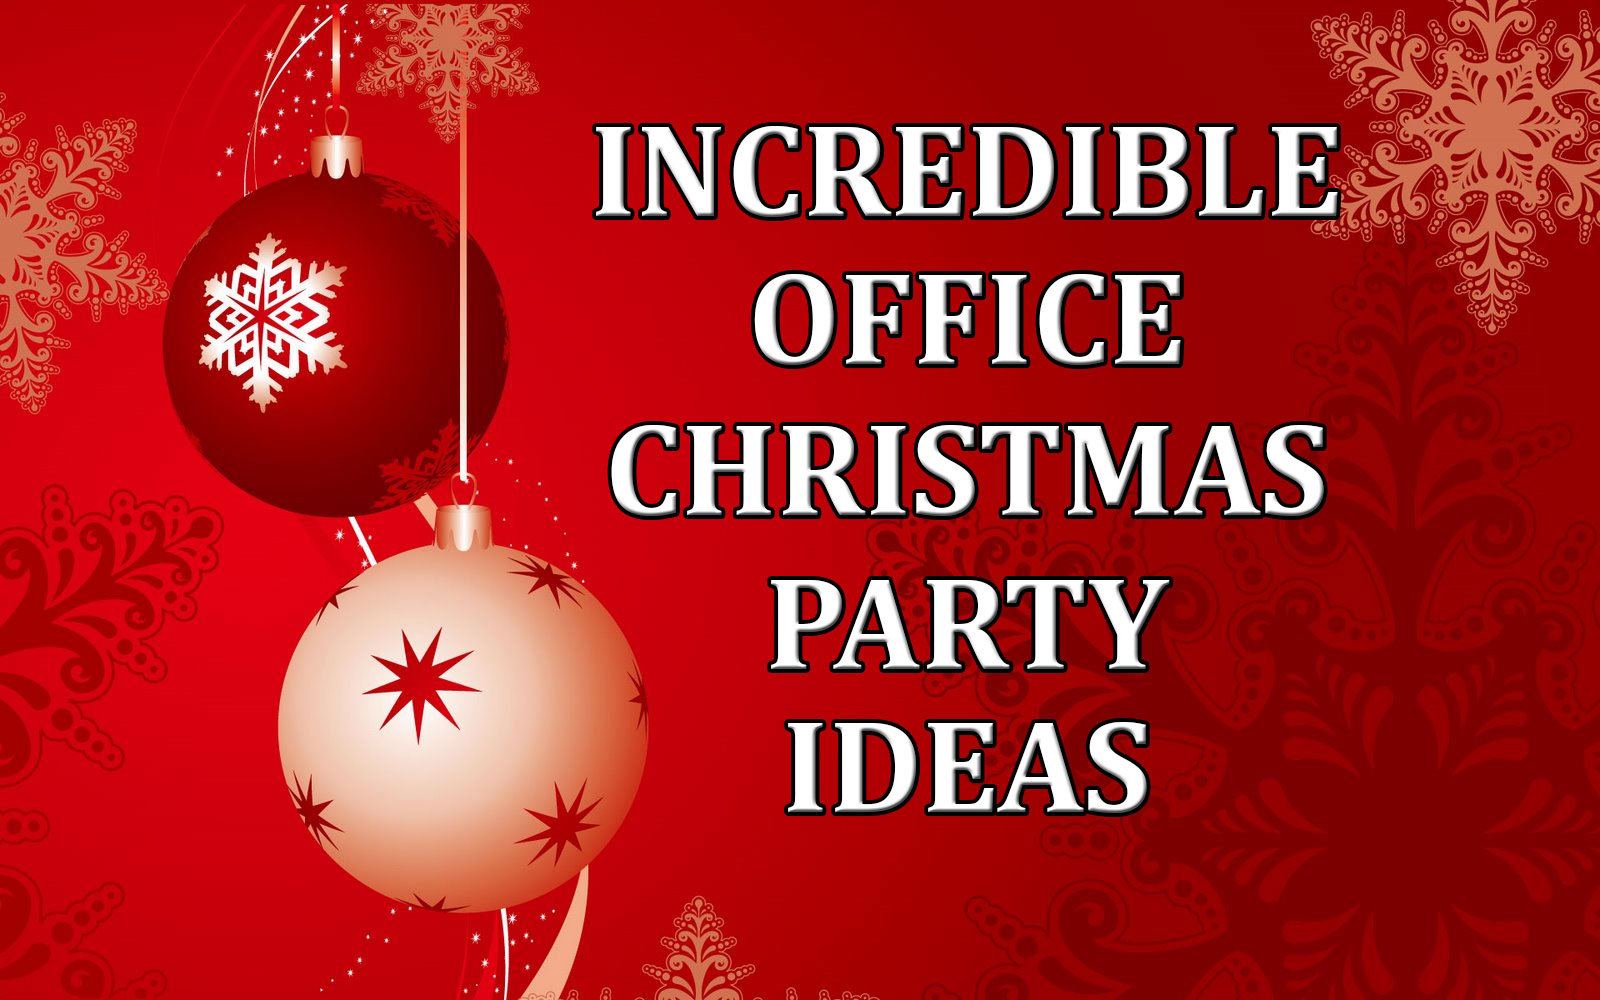 Incredible Office Christmas Party Ideas  Comedy Ventriloquist. Bathroom Design Ideas Images. Bathroom Walls Ideas Photos. Bar Outfit Ideas Winter. Closet Design Ideas Measurements. Storage Room Ideas Minecraft. Valentines Ideas Orange County. Garage Landing Ideas. Curtain Ideas Gallery